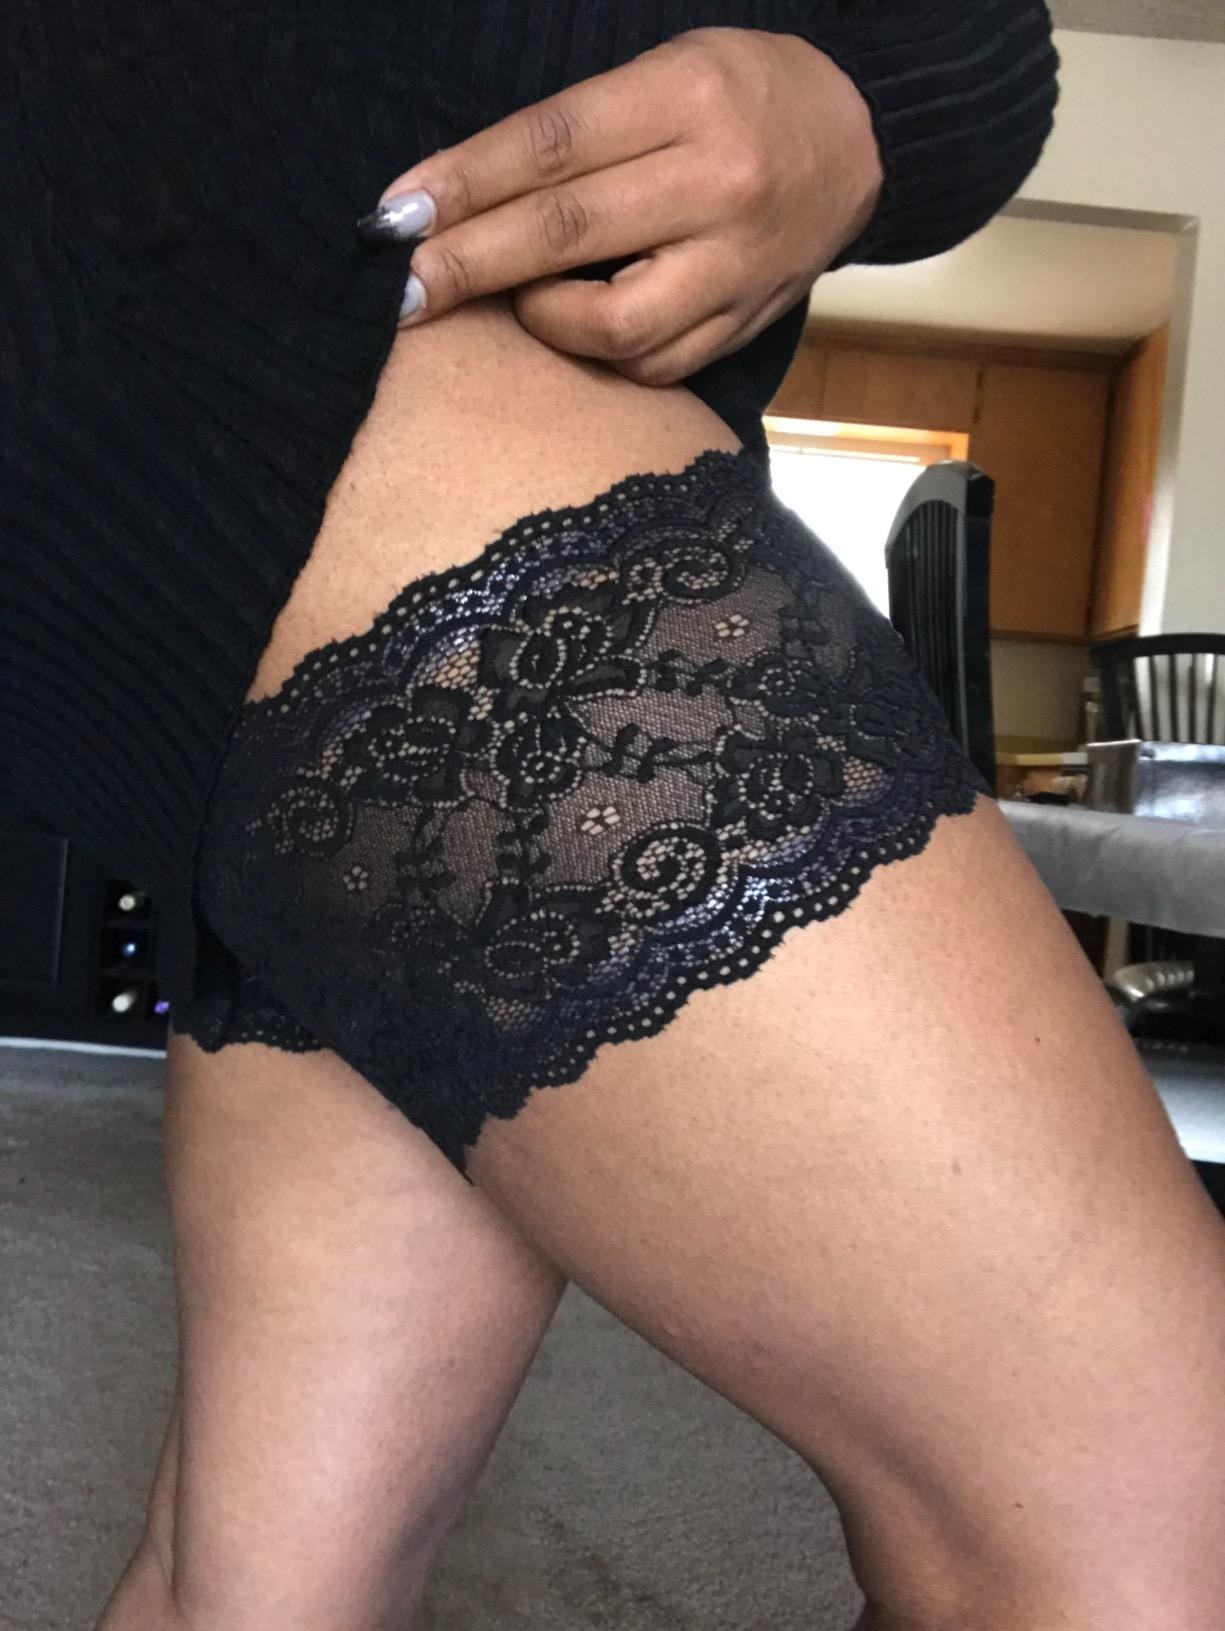 Reviewer pic wearing the thigh bands in black lace